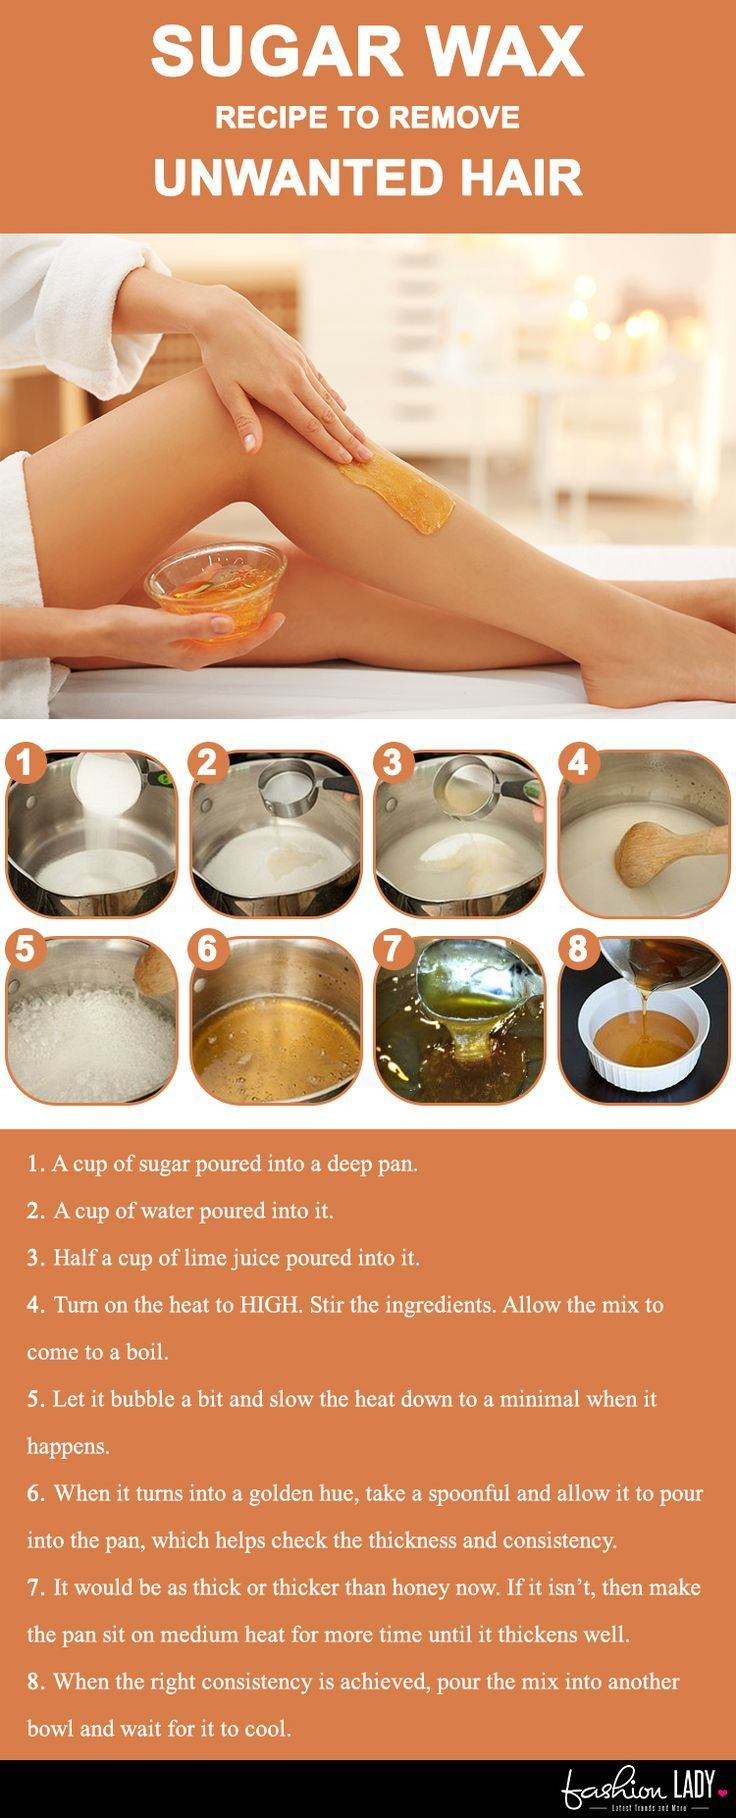 Sugar Wax Recipe To Remove Unwanted Hair